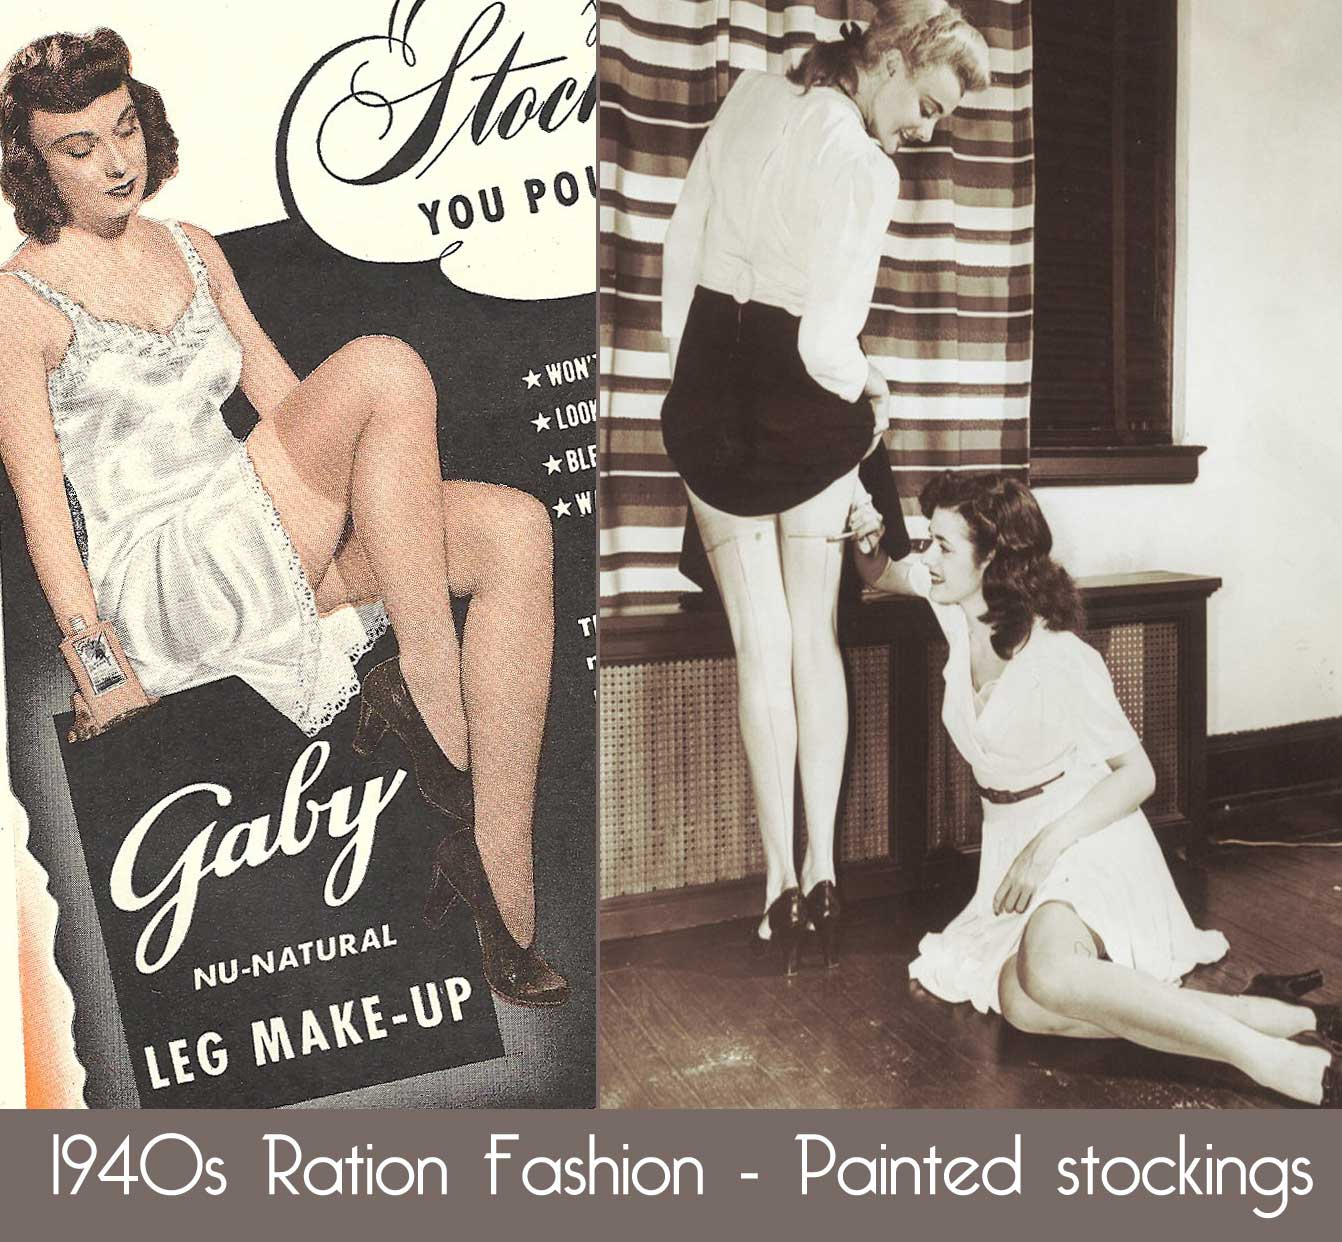 Famous Clothing Designers In The 1940 s Ration Fashion Paint